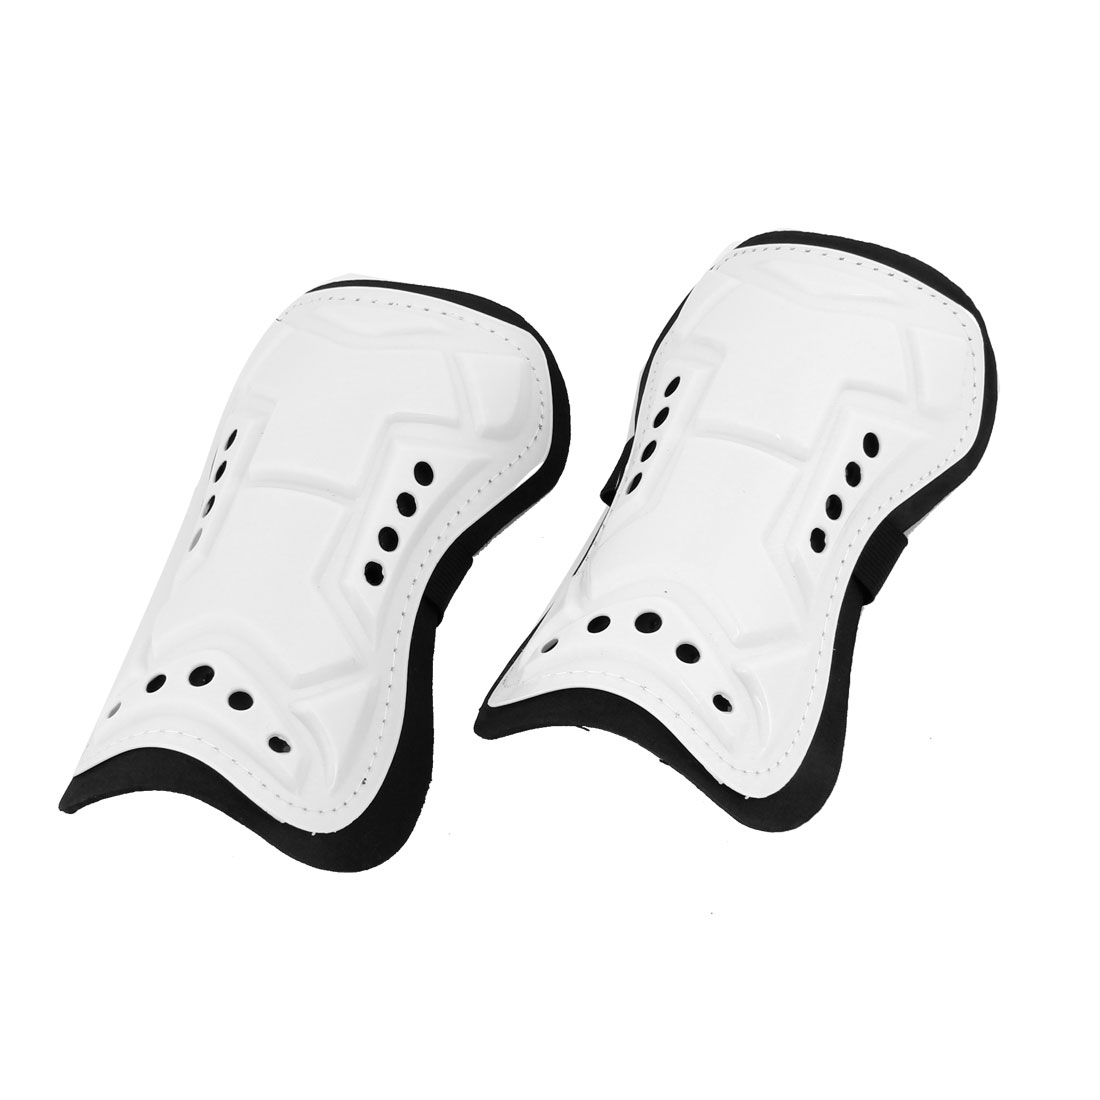 Man Skating Foam Interior Calf Protector Shin Support White Black 2pcs